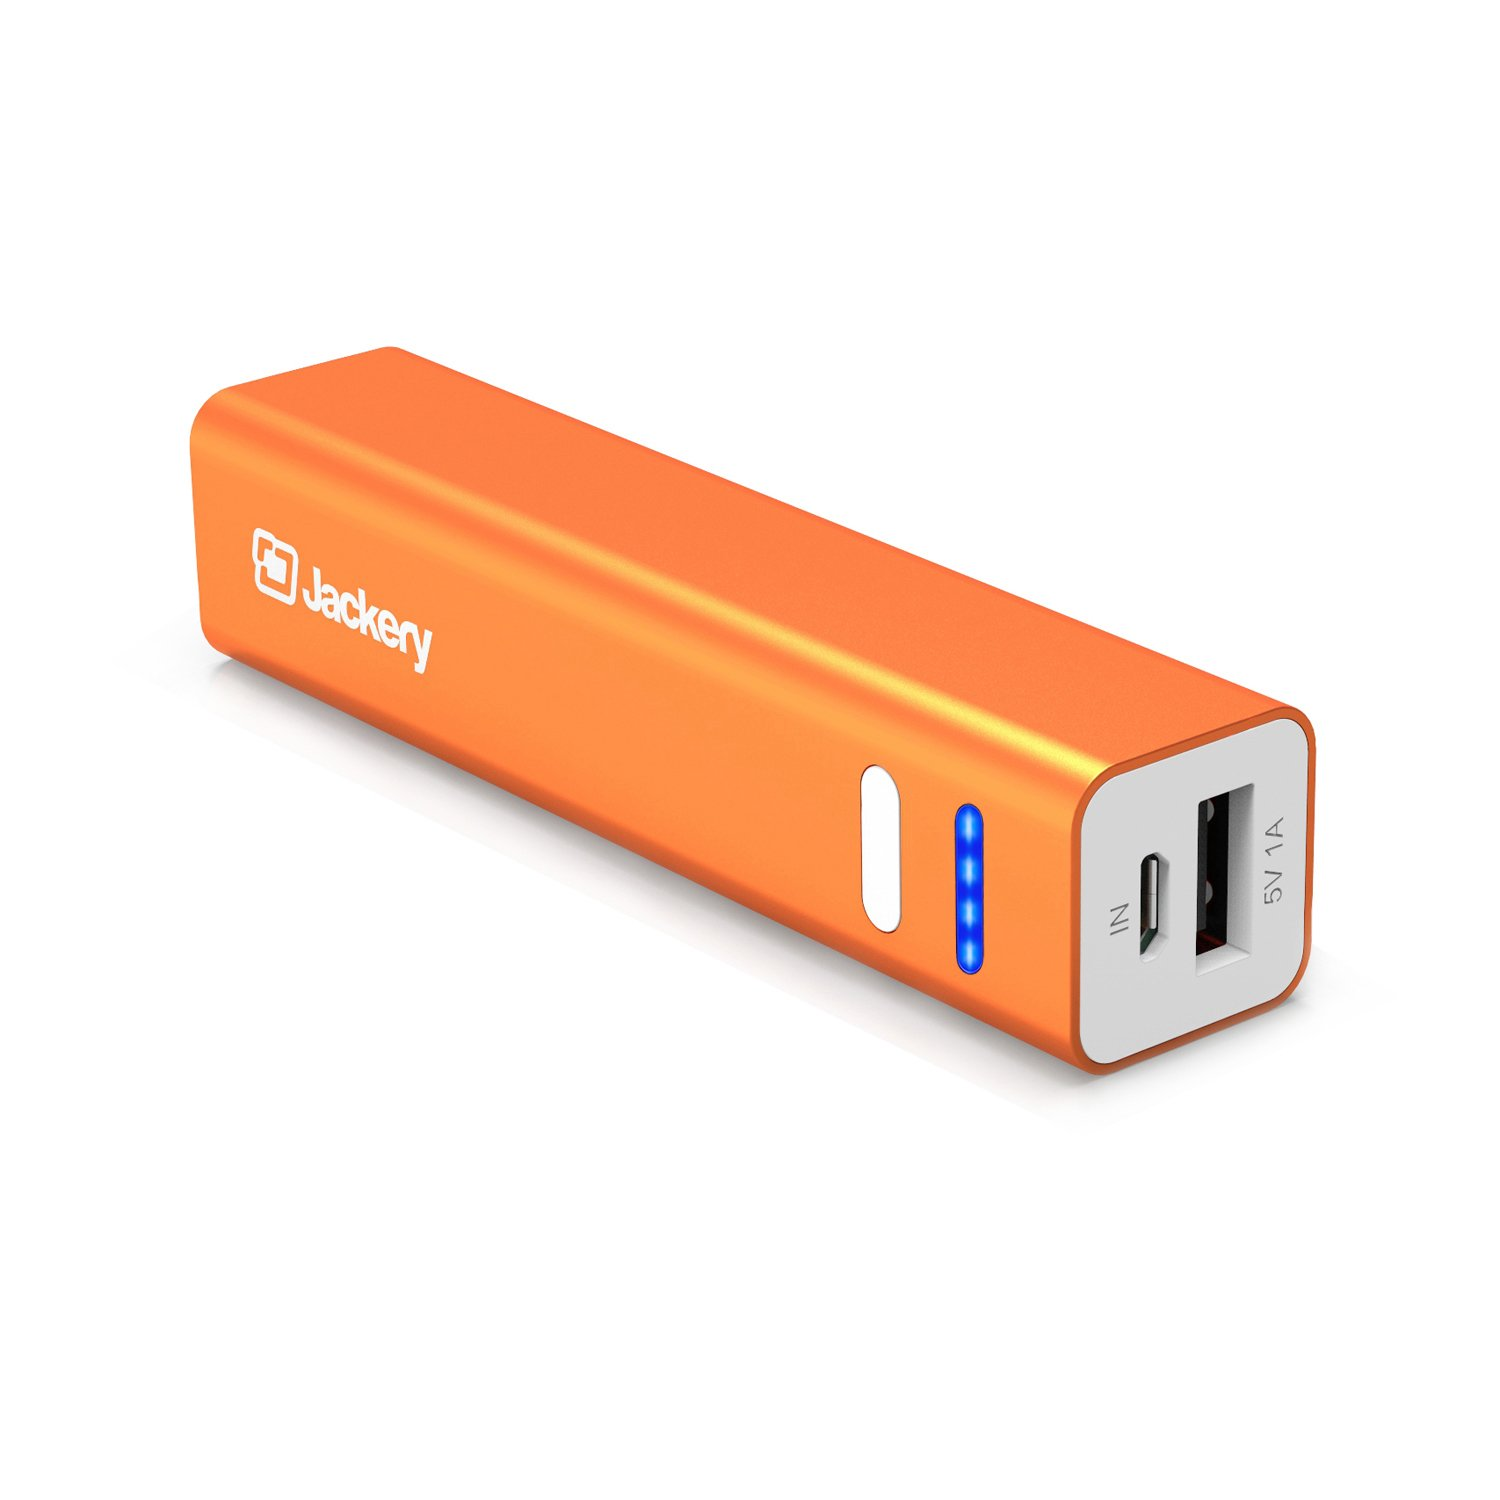 [The Smallest] Jackery Mini Premium 3350mAh Portable Charger - External Battery Pack, Power Bank, & Portable iPhone Charger for iPhone 7, 7 Plus, 6s, 6s Plus, iPad, Galaxy S7, Galaxy S6 (Orange)